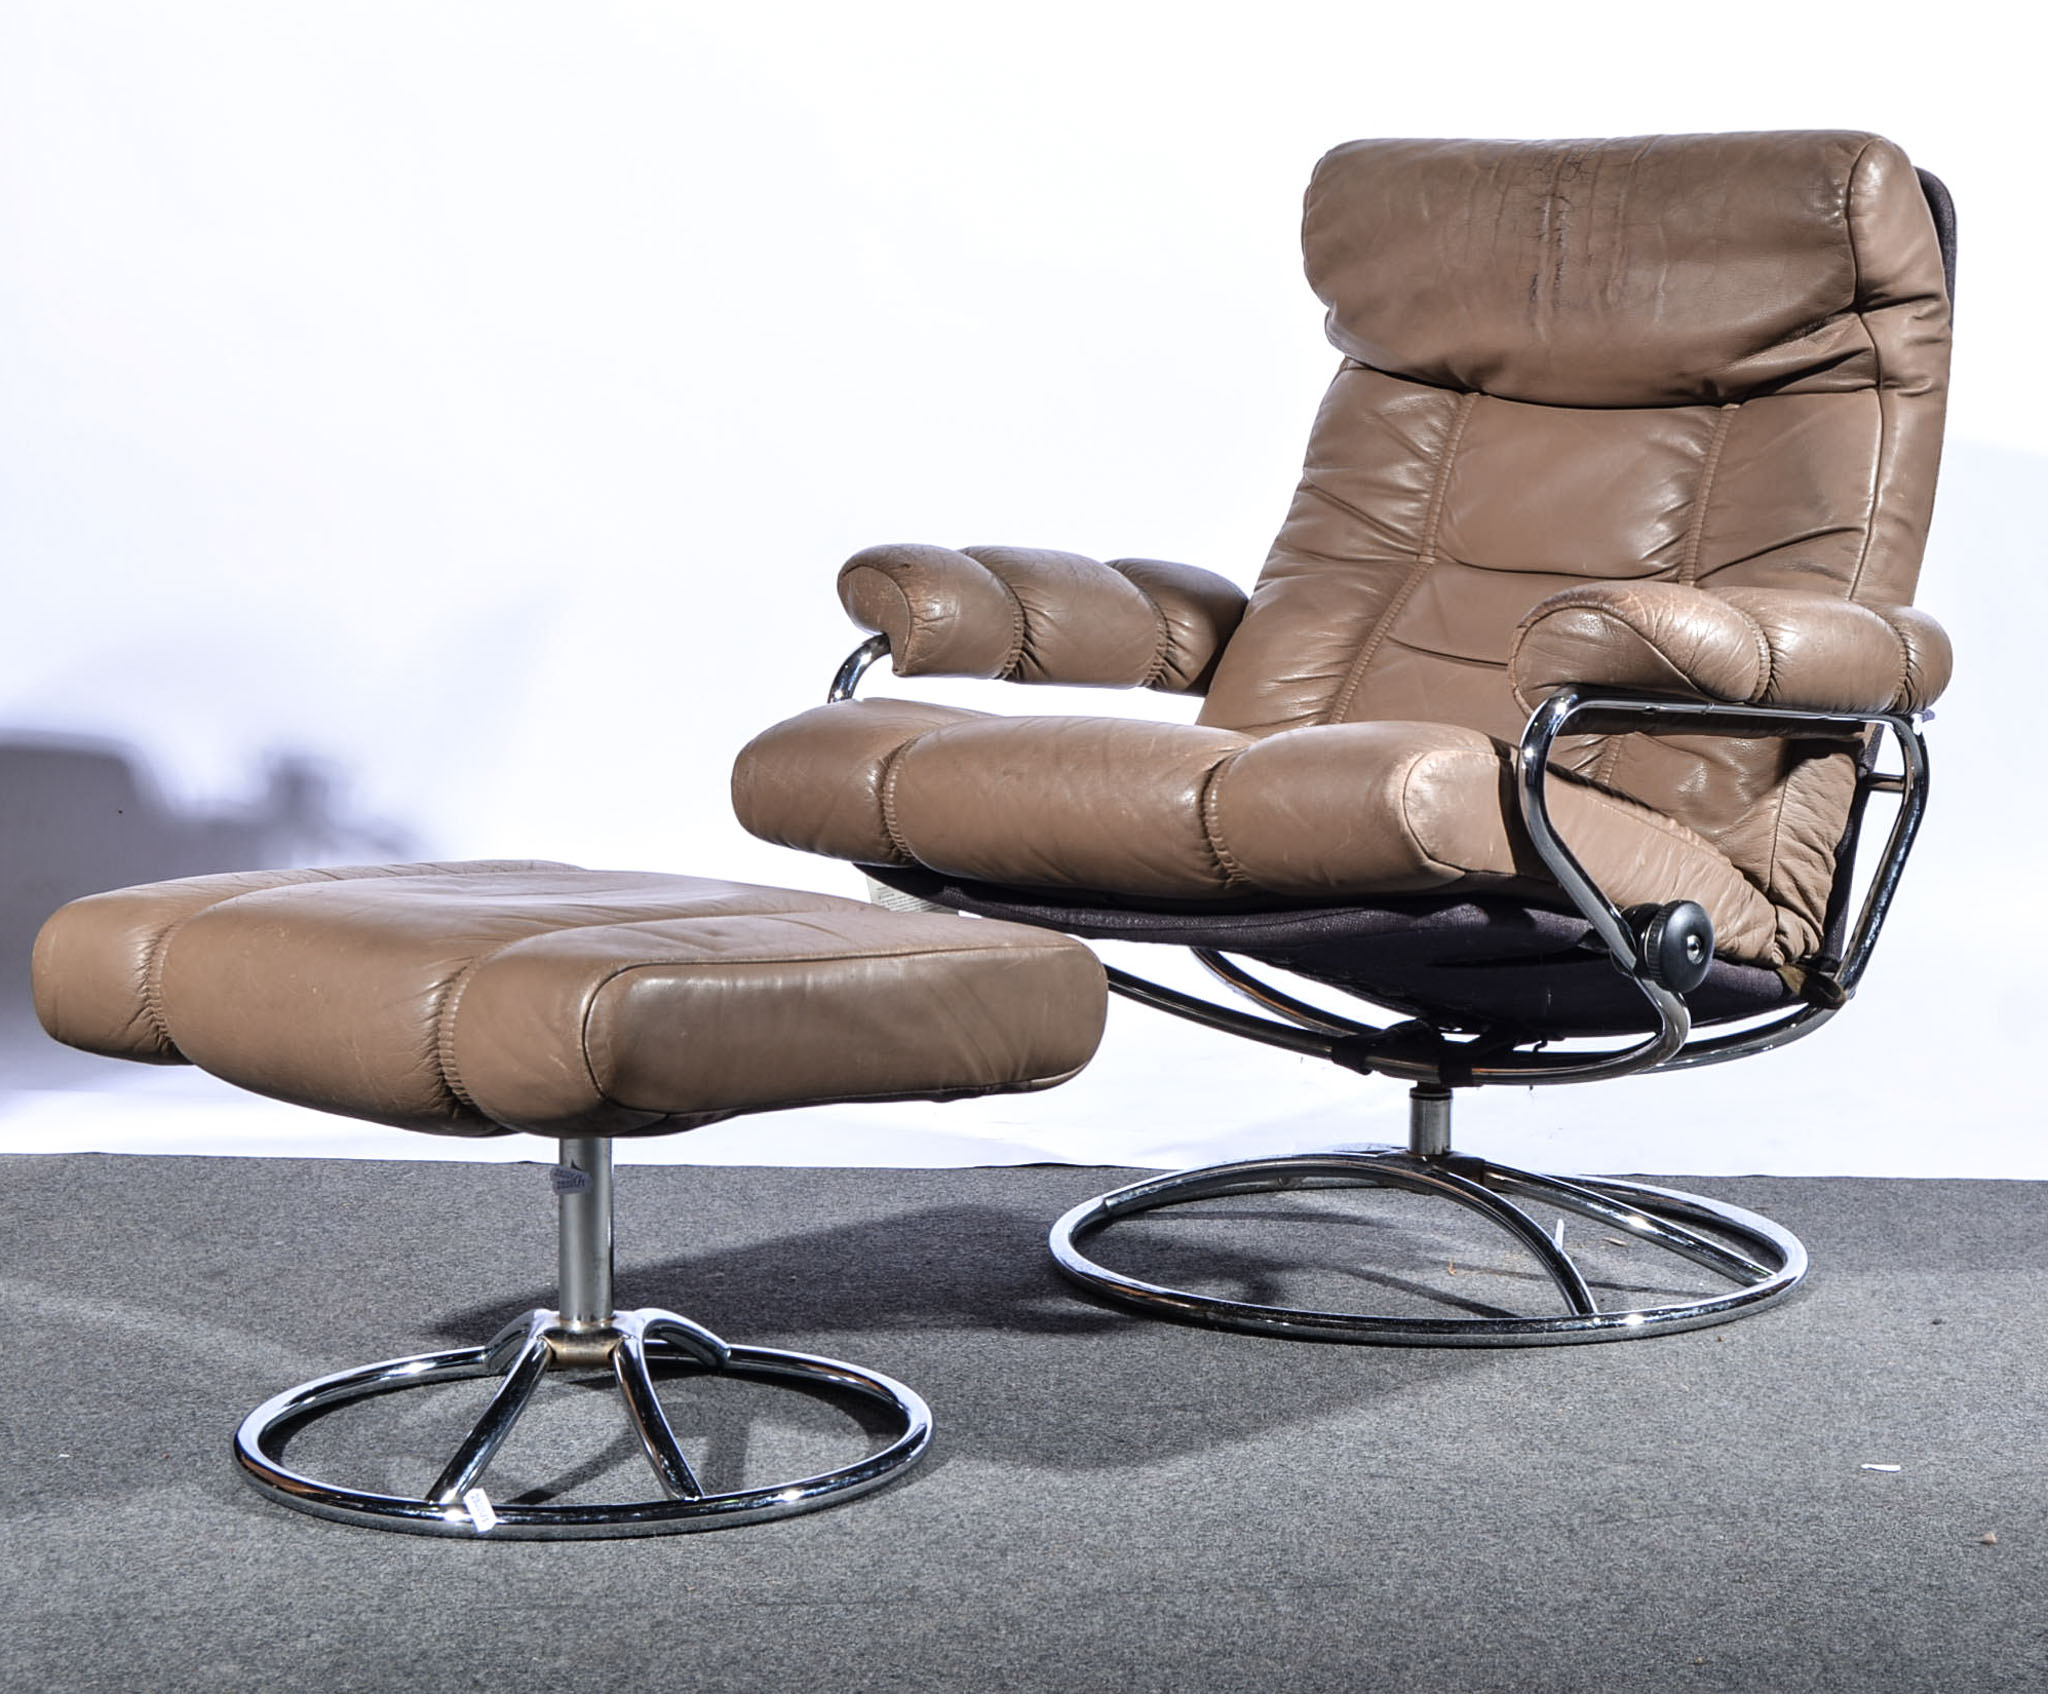 Stressless Furniture Market Harborough An Ekornes Stressless Easy Chair And Footstool In